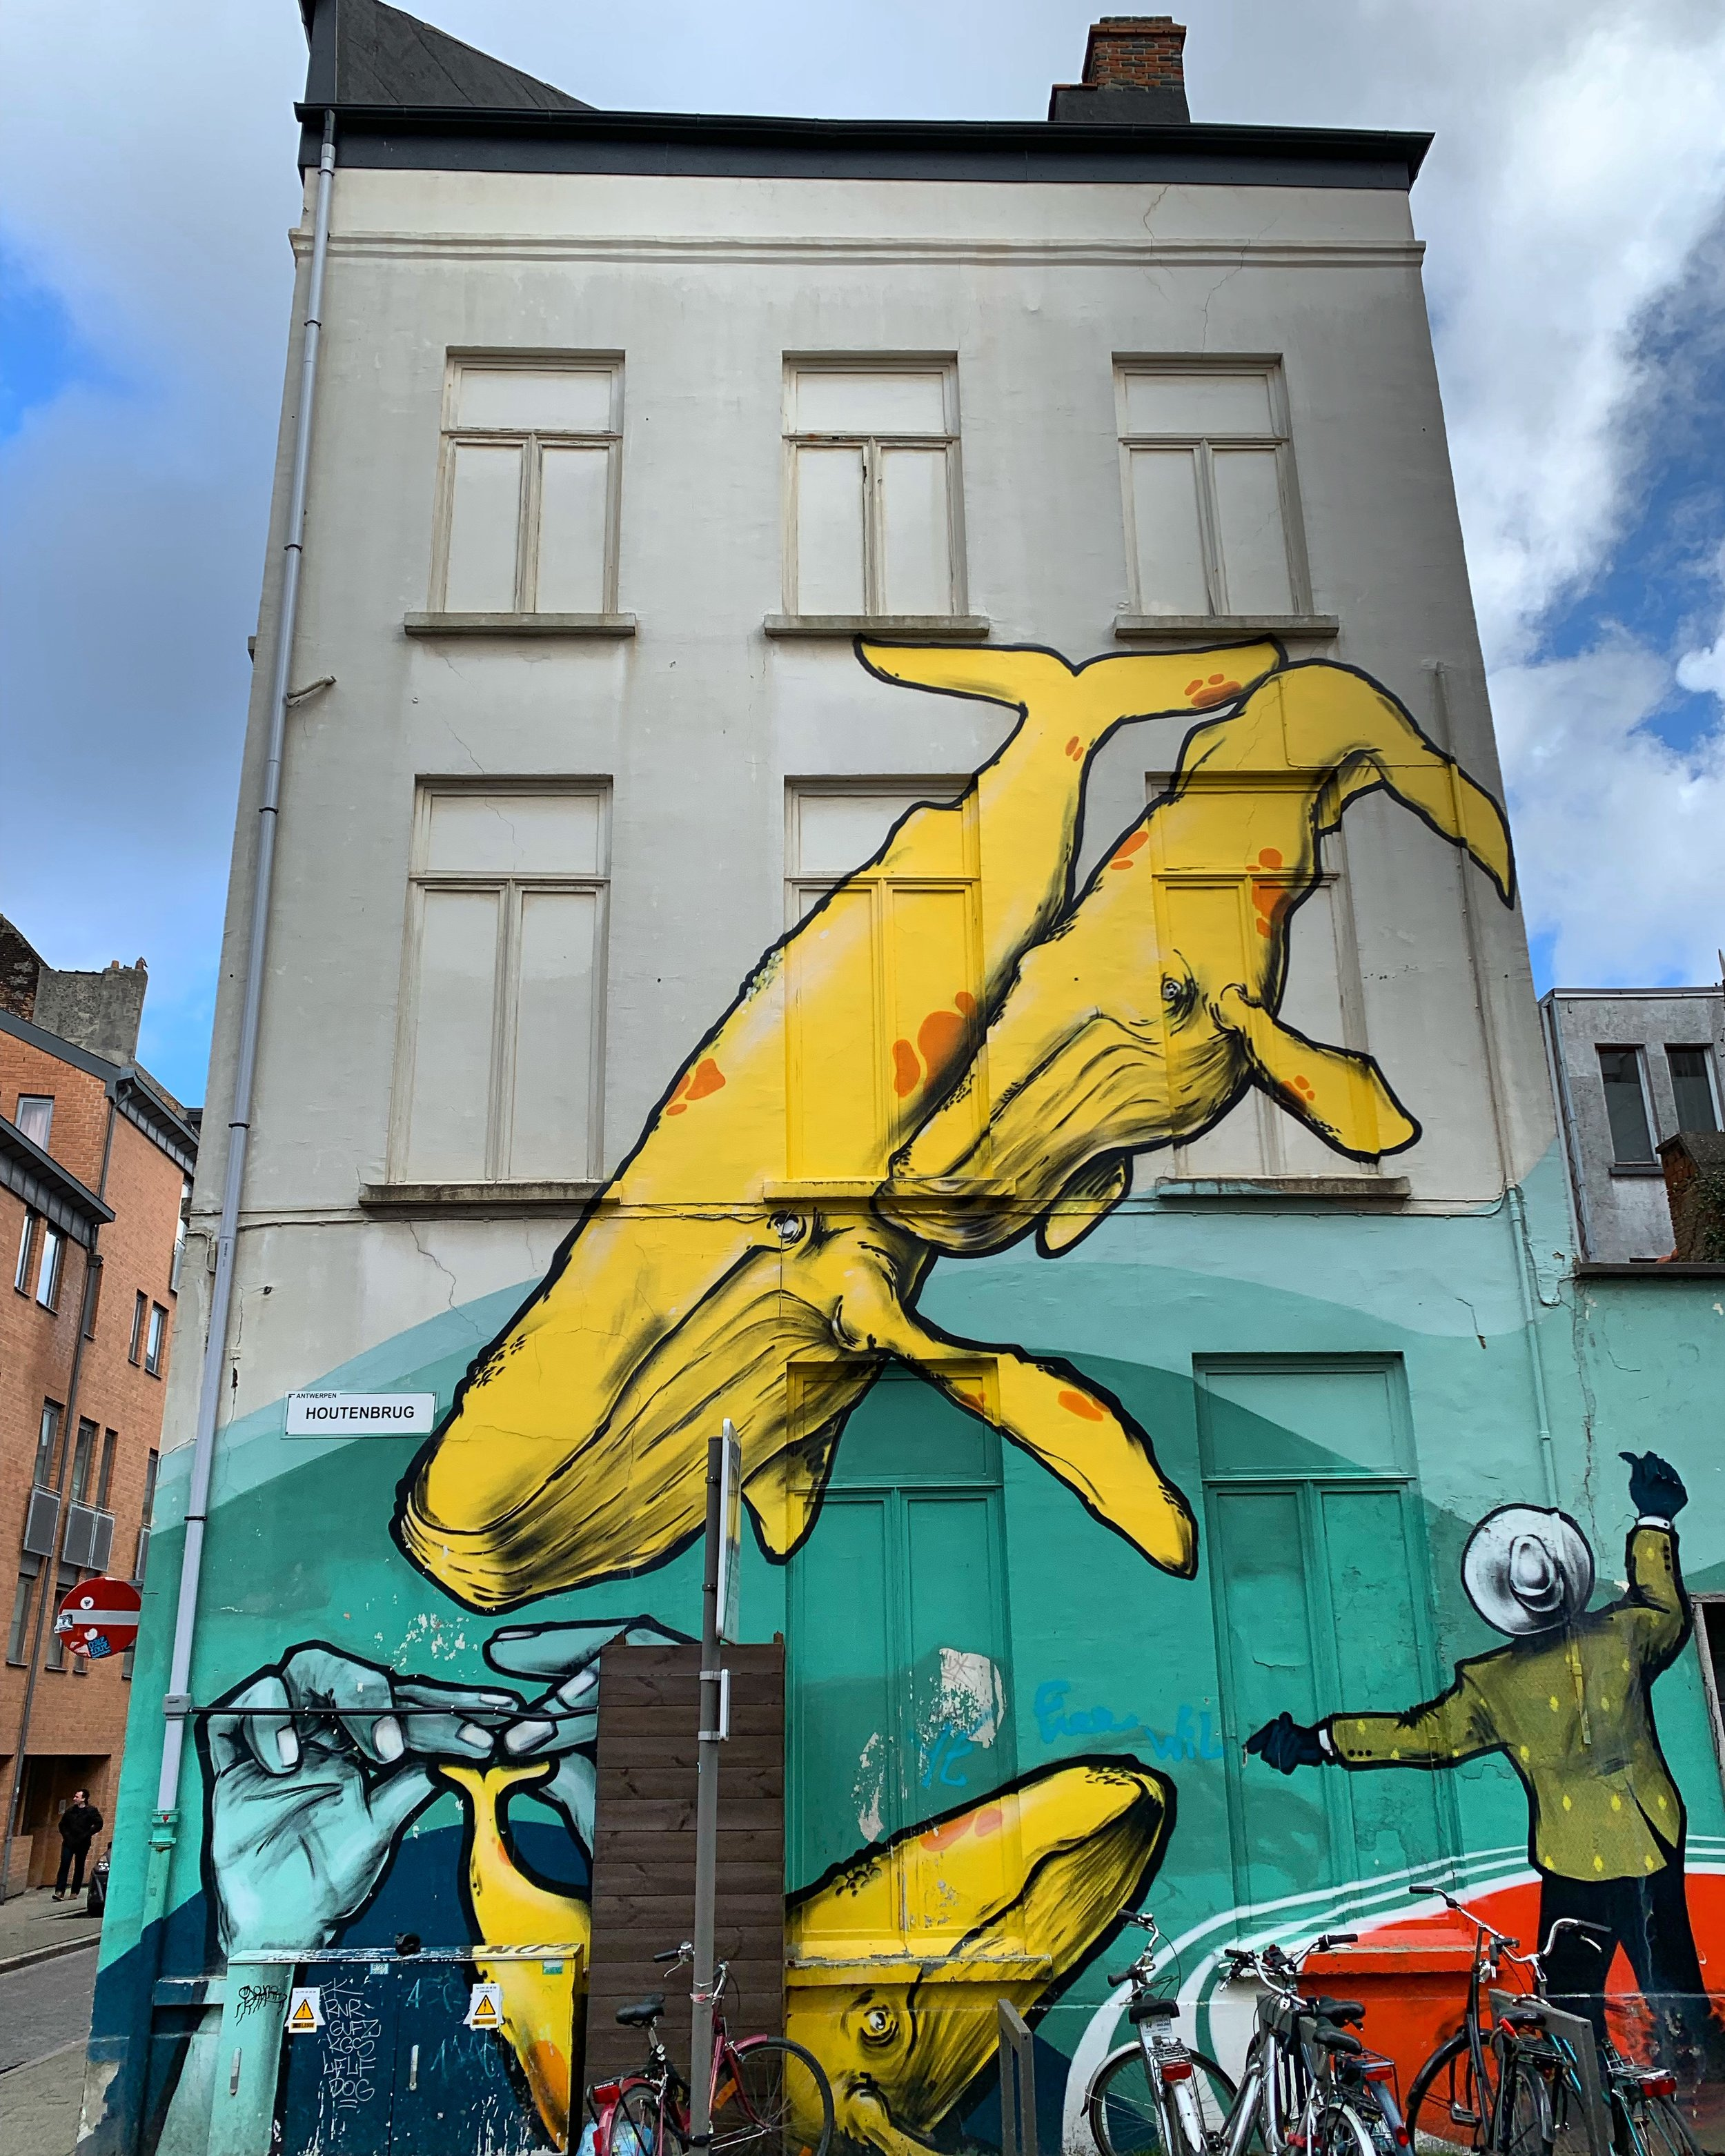 Before Netflix's Our Planet, there was this mural in Antwerp, Belgium.